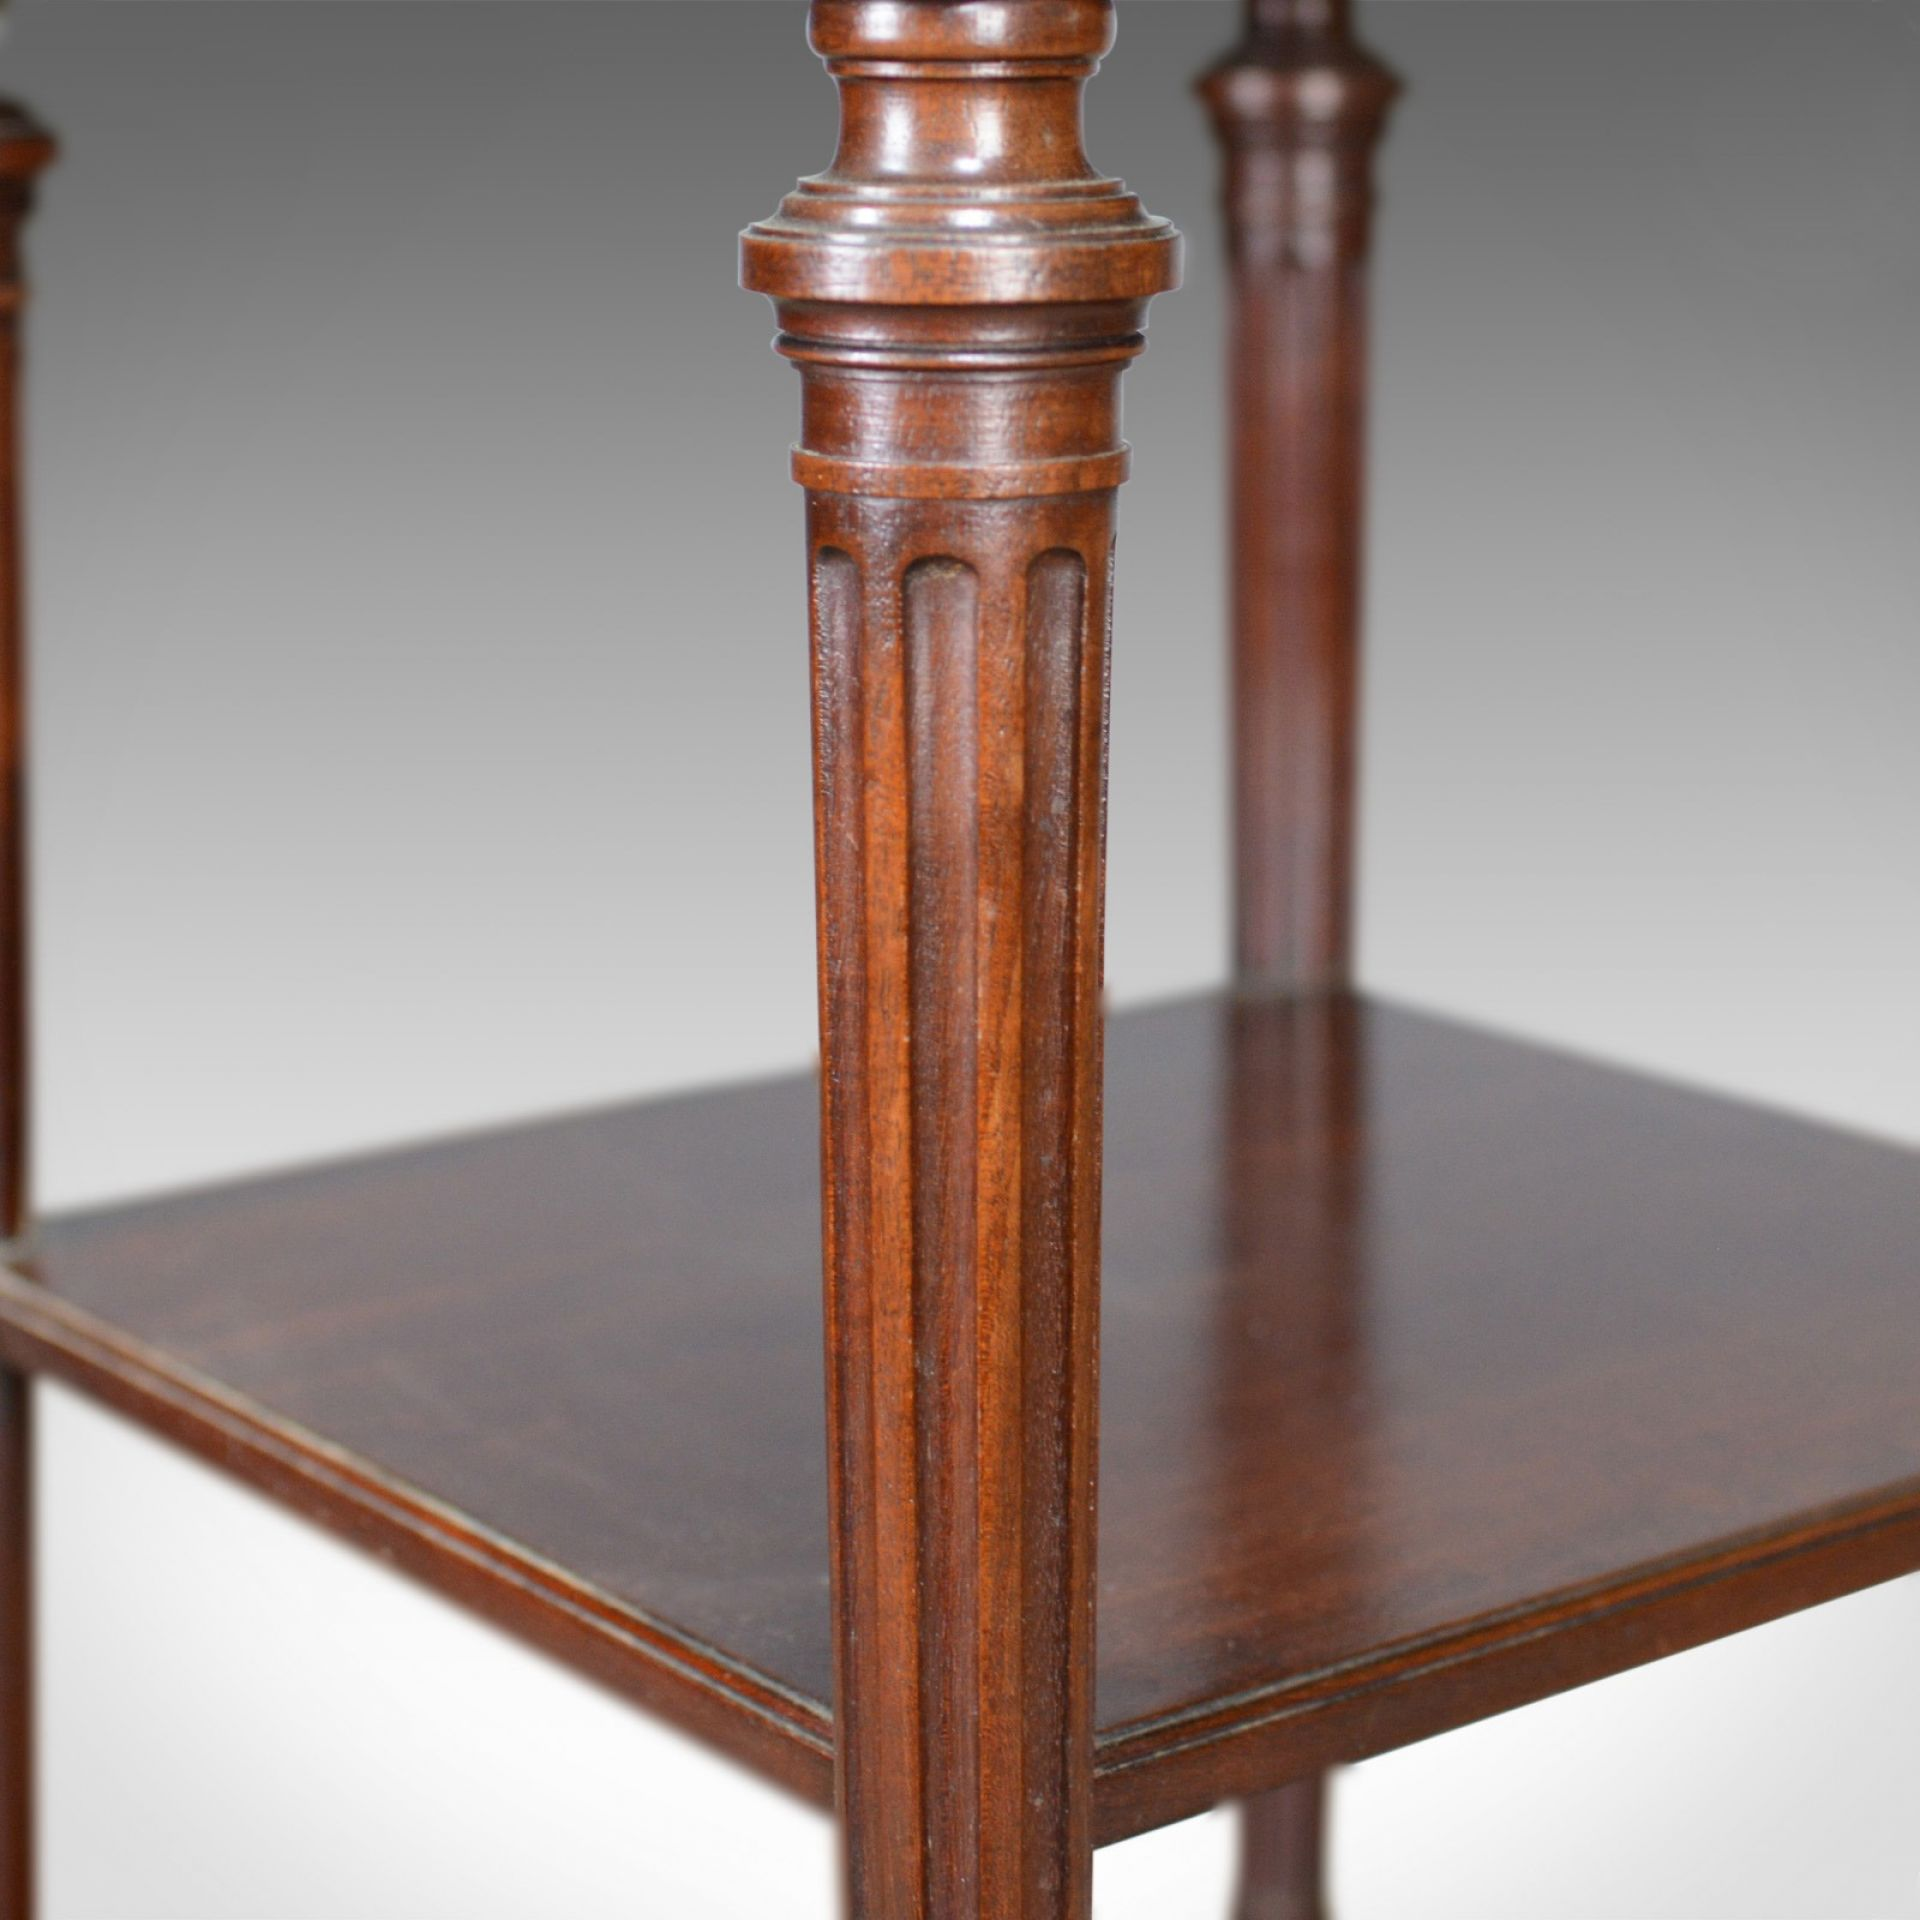 Vintage French, Marble Top, Display Table, Art Deco Period, Circa 1940